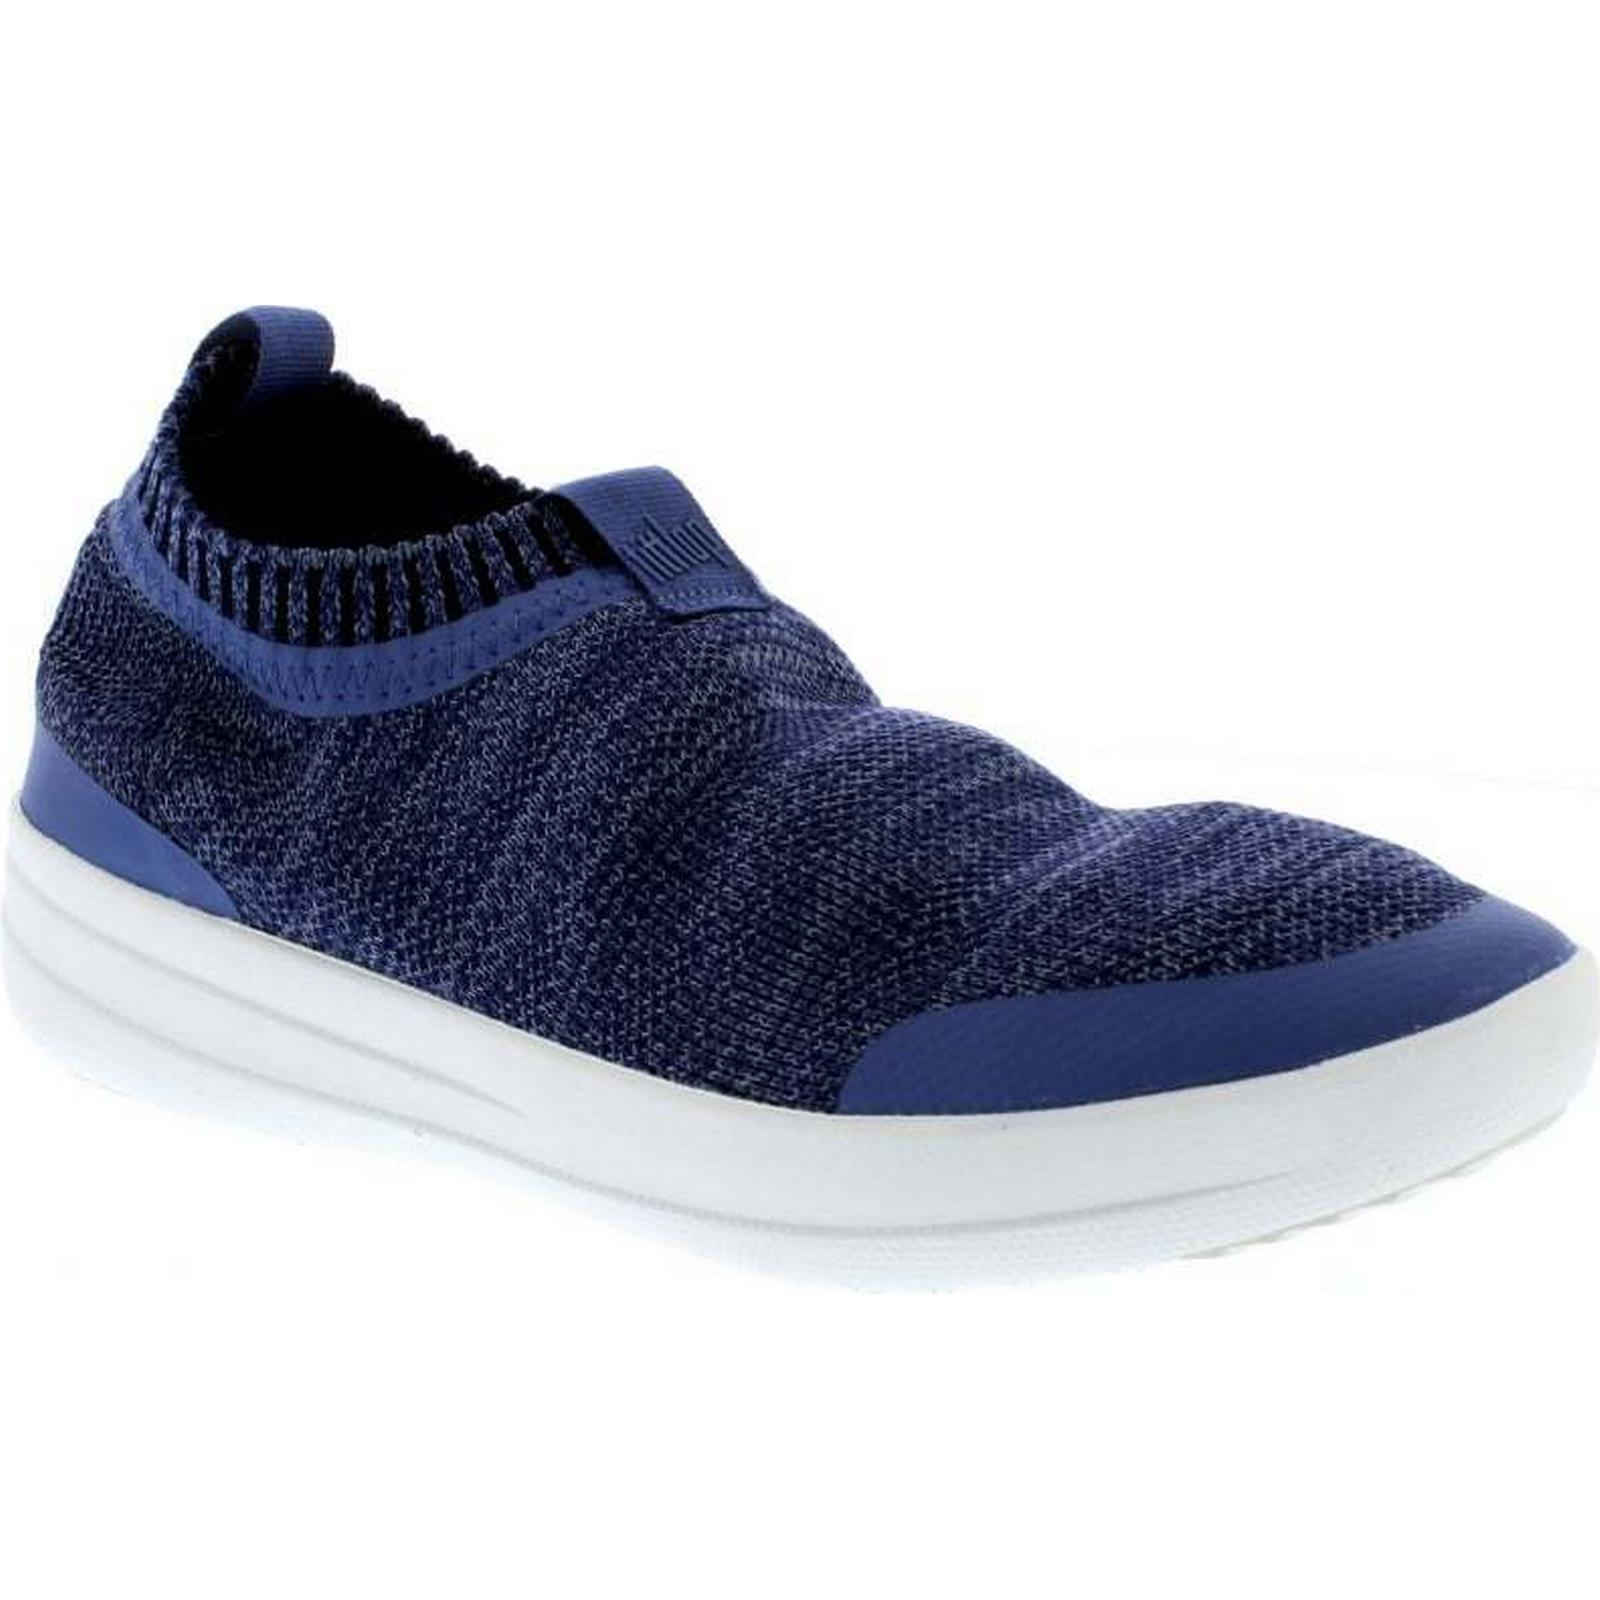 FitFlop™ FitFlop Uberknit Slip On On On Sneaker - Indian Blue/Powder Blue Size: 6. d4474b